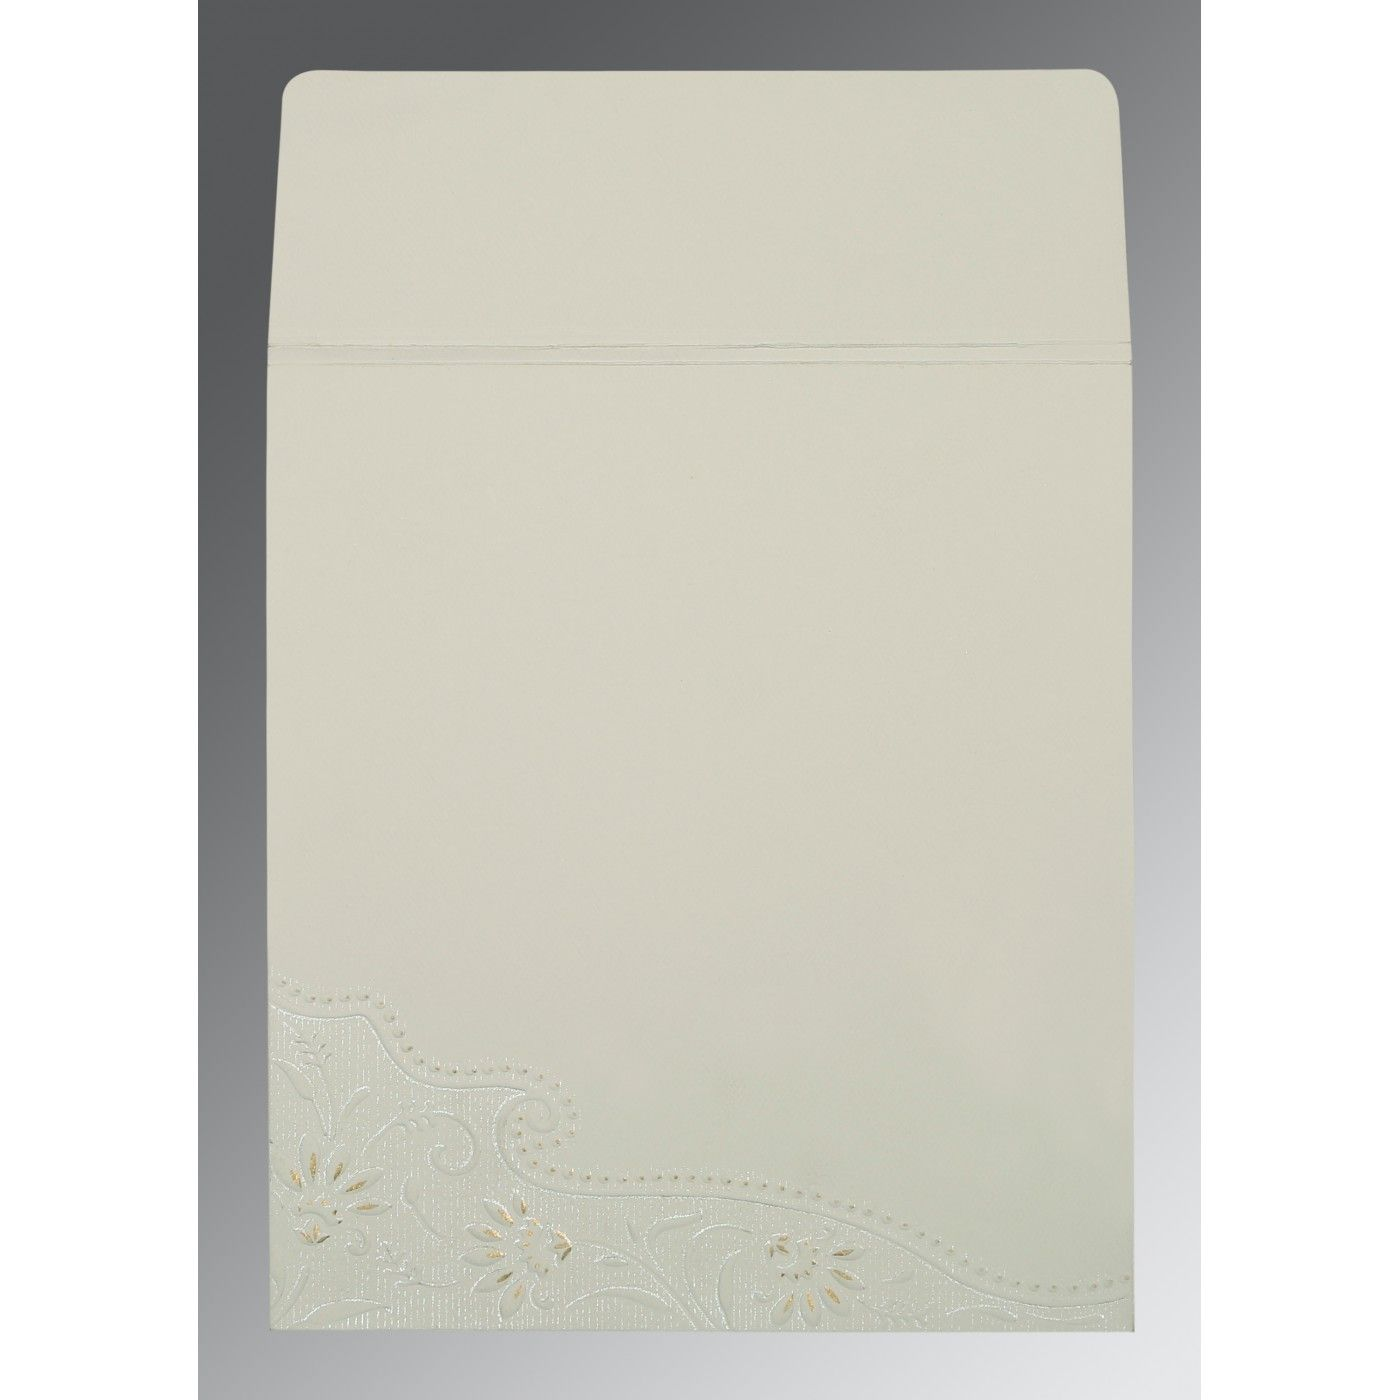 OFF-WHITE MATTE BOX THEMED - FOIL STAMPED WEDDING CARD : CS-1228 - IndianWeddingCards